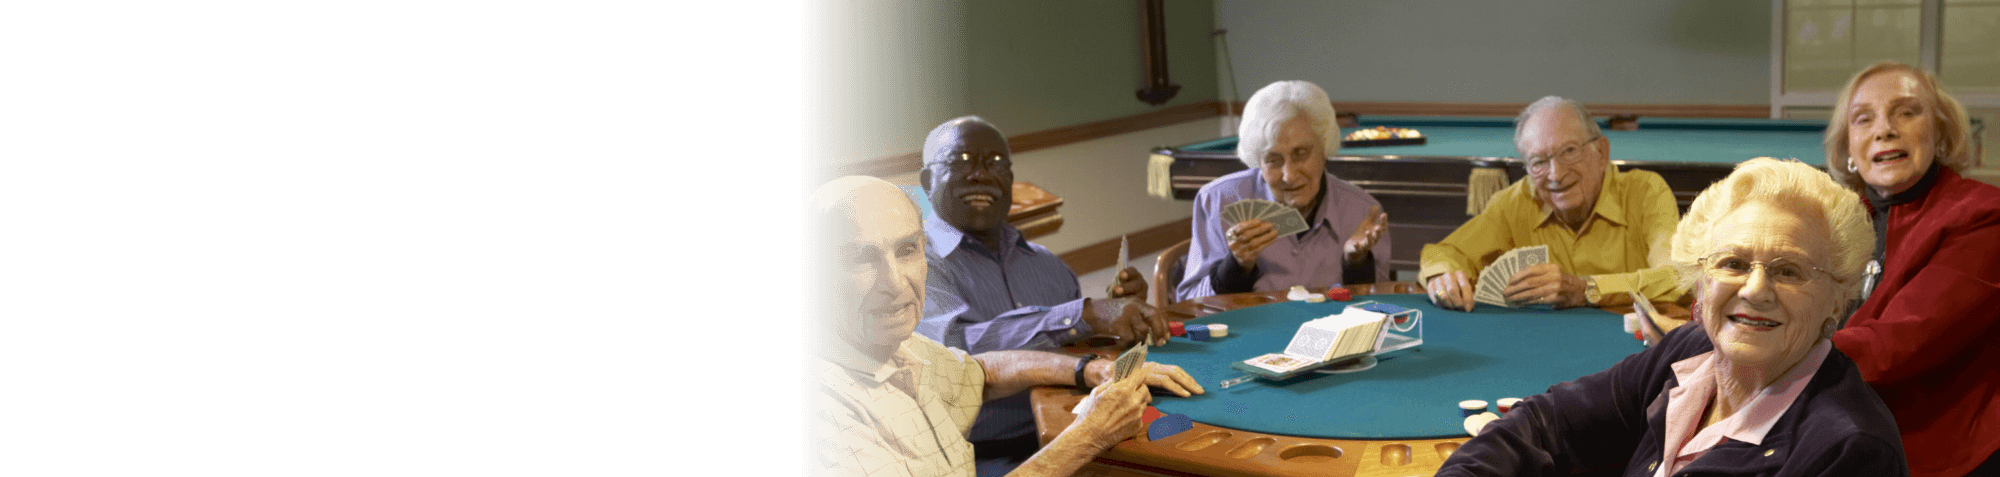 Group of old people are playing cards